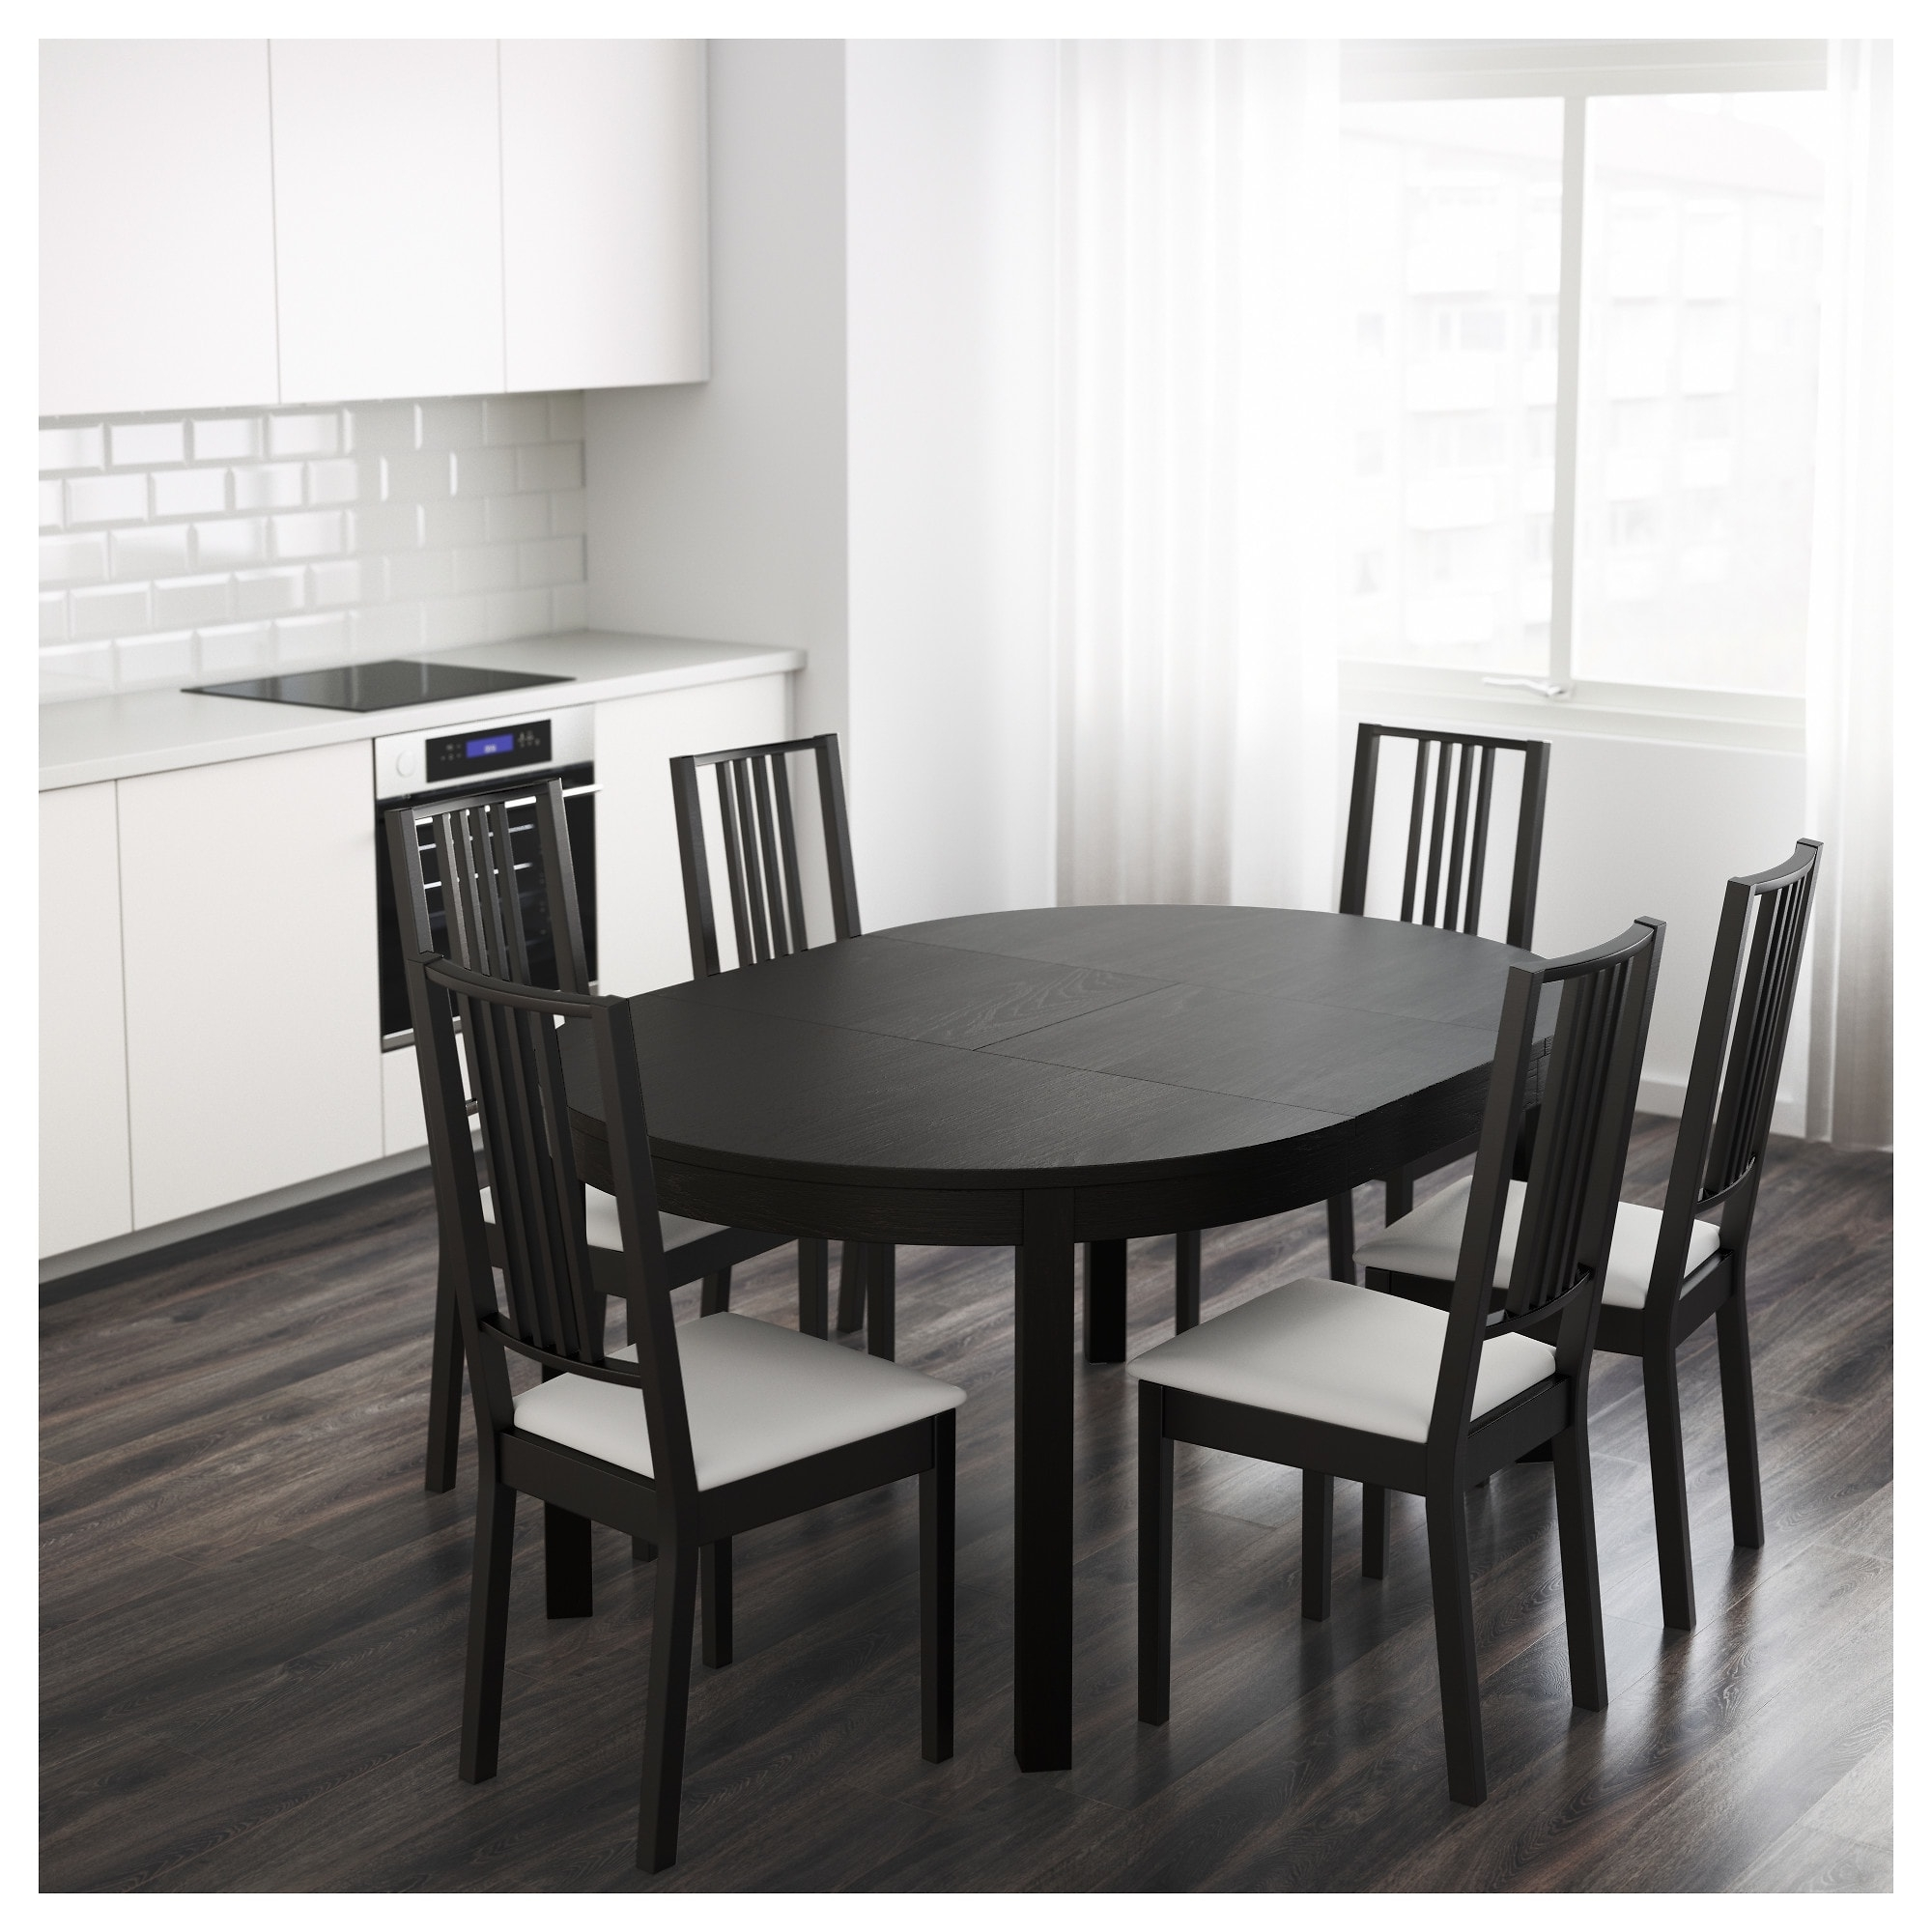 Ikea Round Dining Tables Set Regarding Trendy Bjursta Extendable Table – Ikea (View 11 of 25)